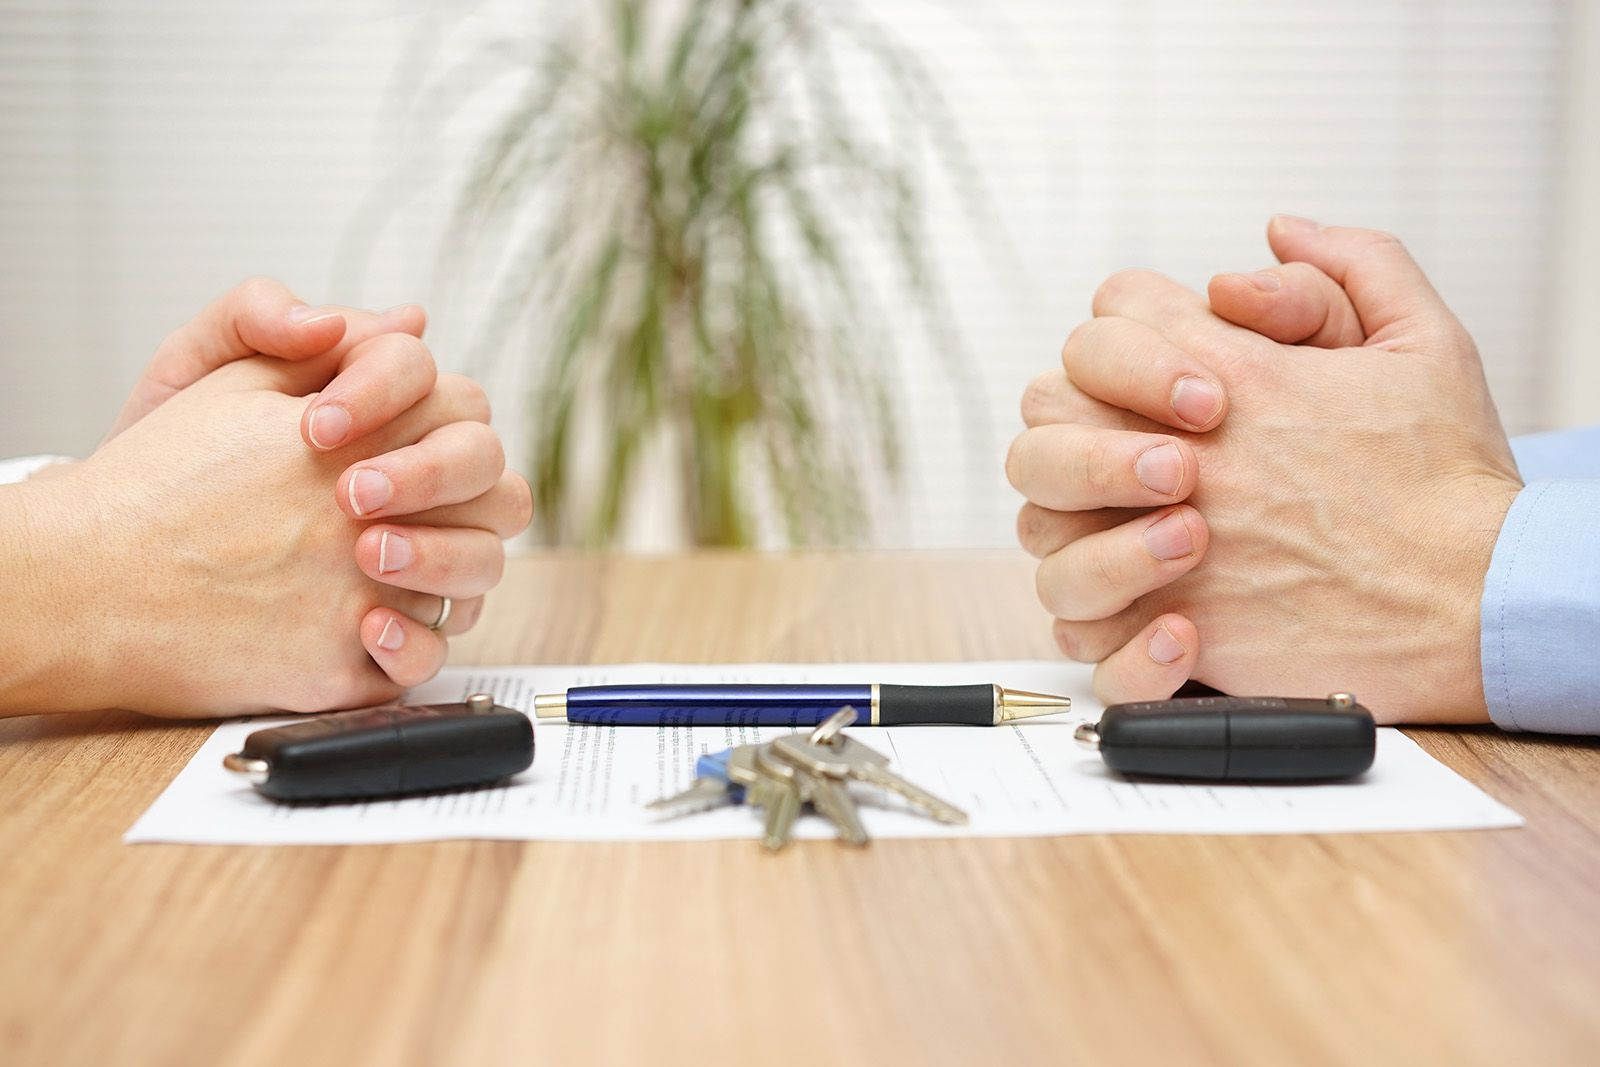 Hands on opposite sides of a negotiation table, divorce settlement in the middle.